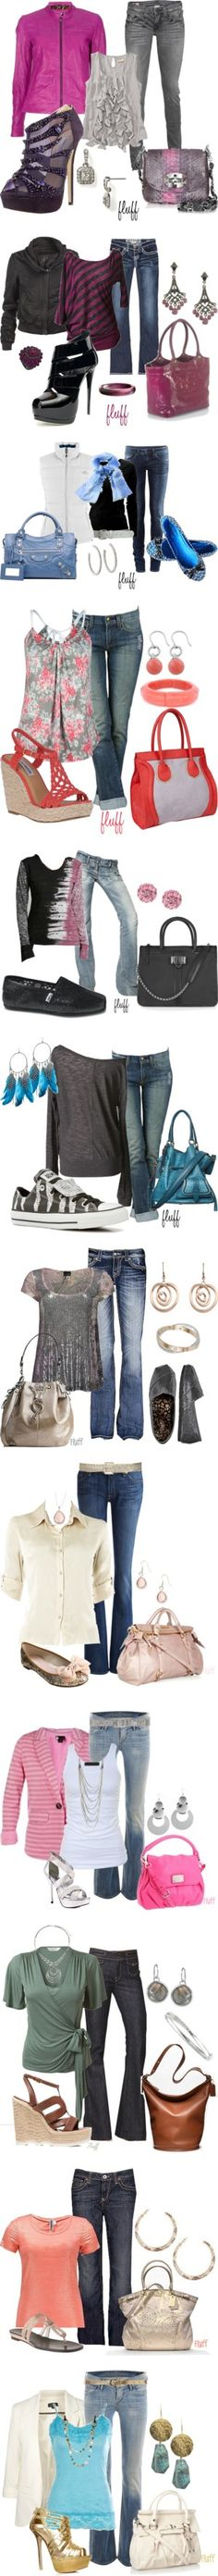 """""""Love these!"""" by lluikart ❤ liked on Polyvore"""